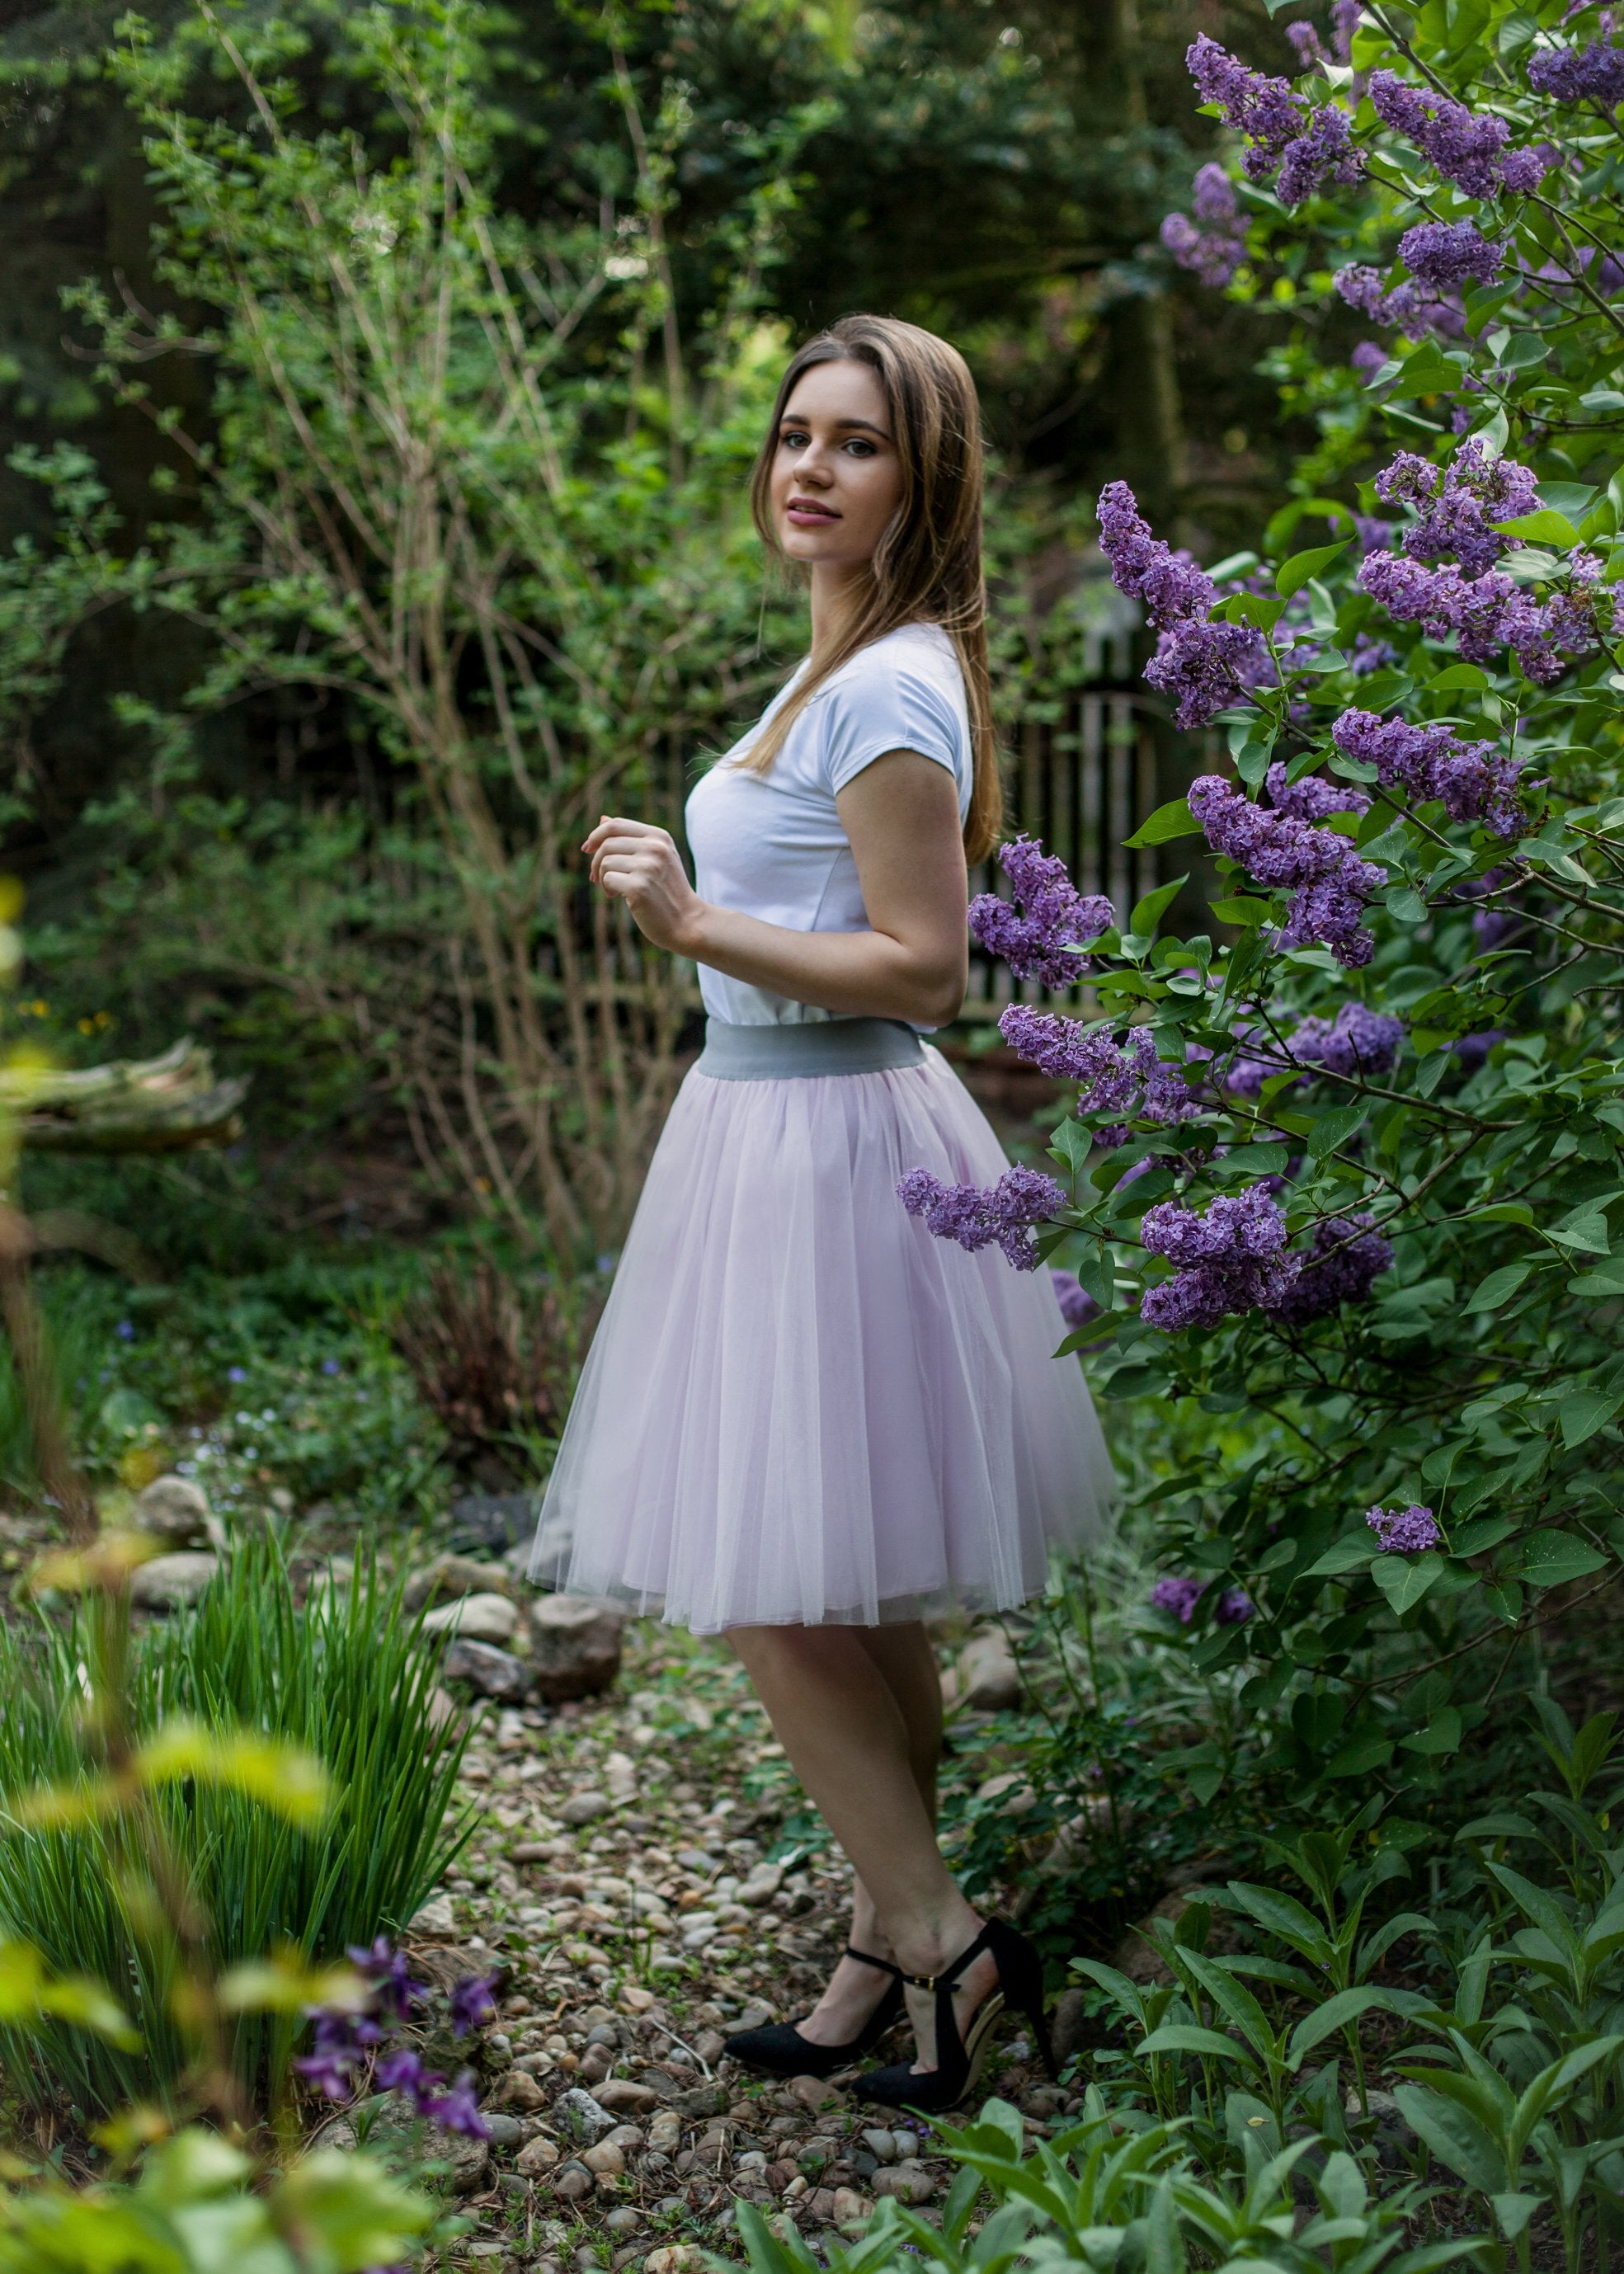 Pale Pink Tulle Skirt